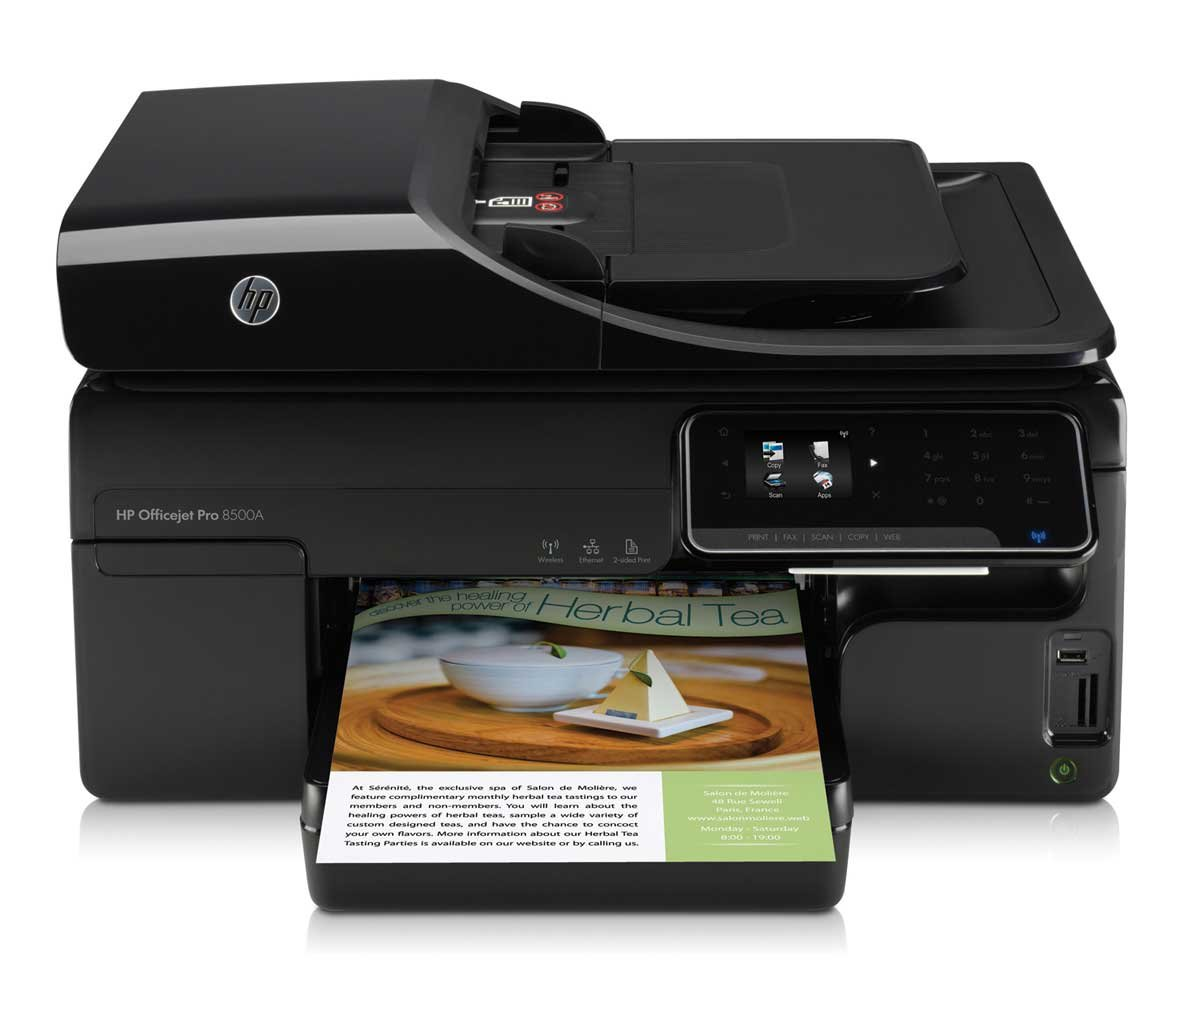 HP Officejet PRO 8500 A Multifunctional Printer: Amazon.co.uk: Computers &  Accessories